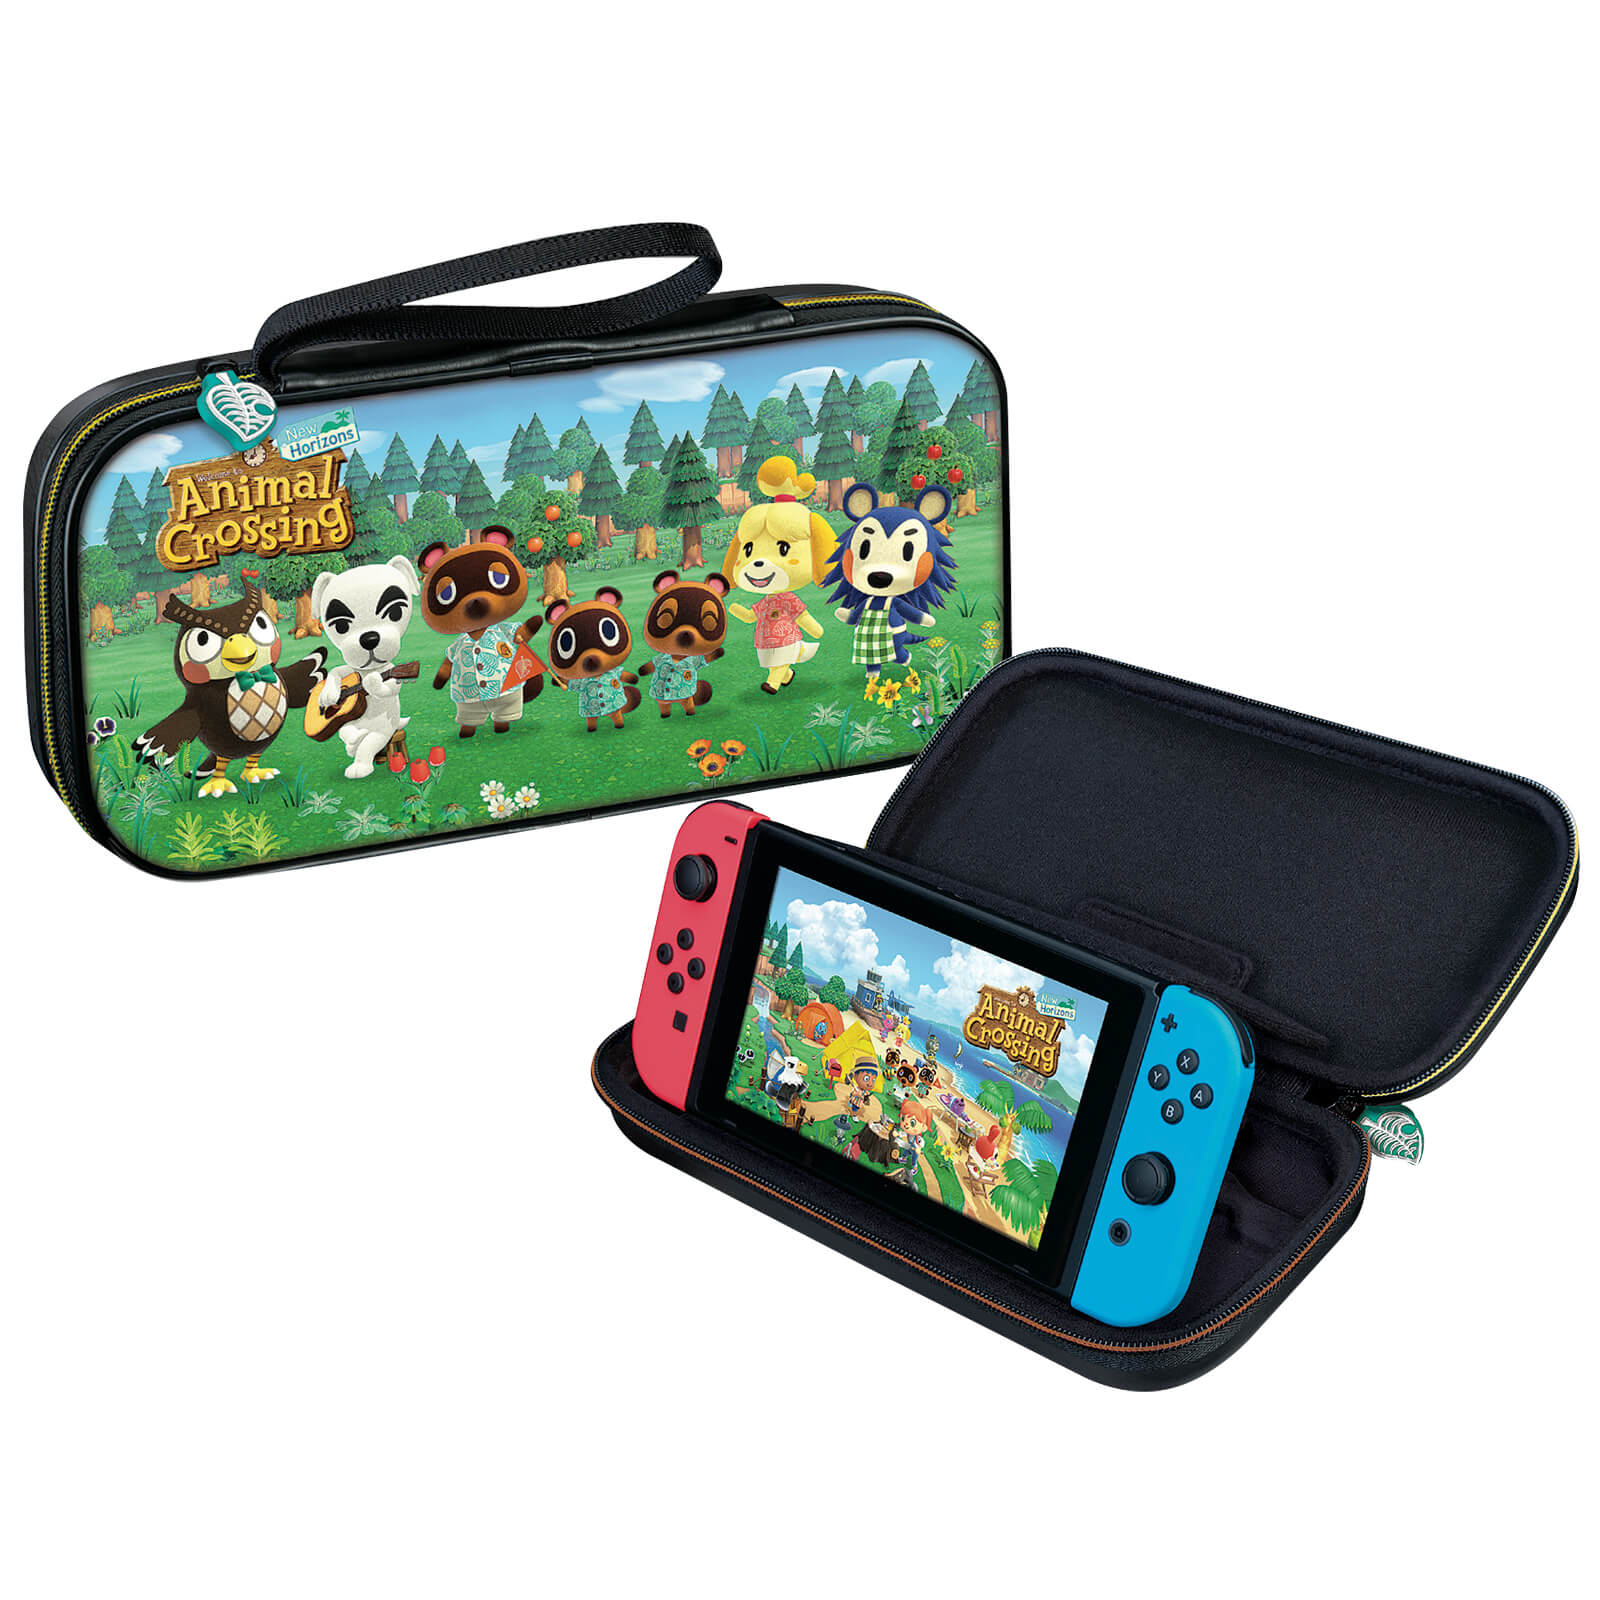 Nintendo Switch Nintendo Switch Lite Deluxe Travel Case Animal